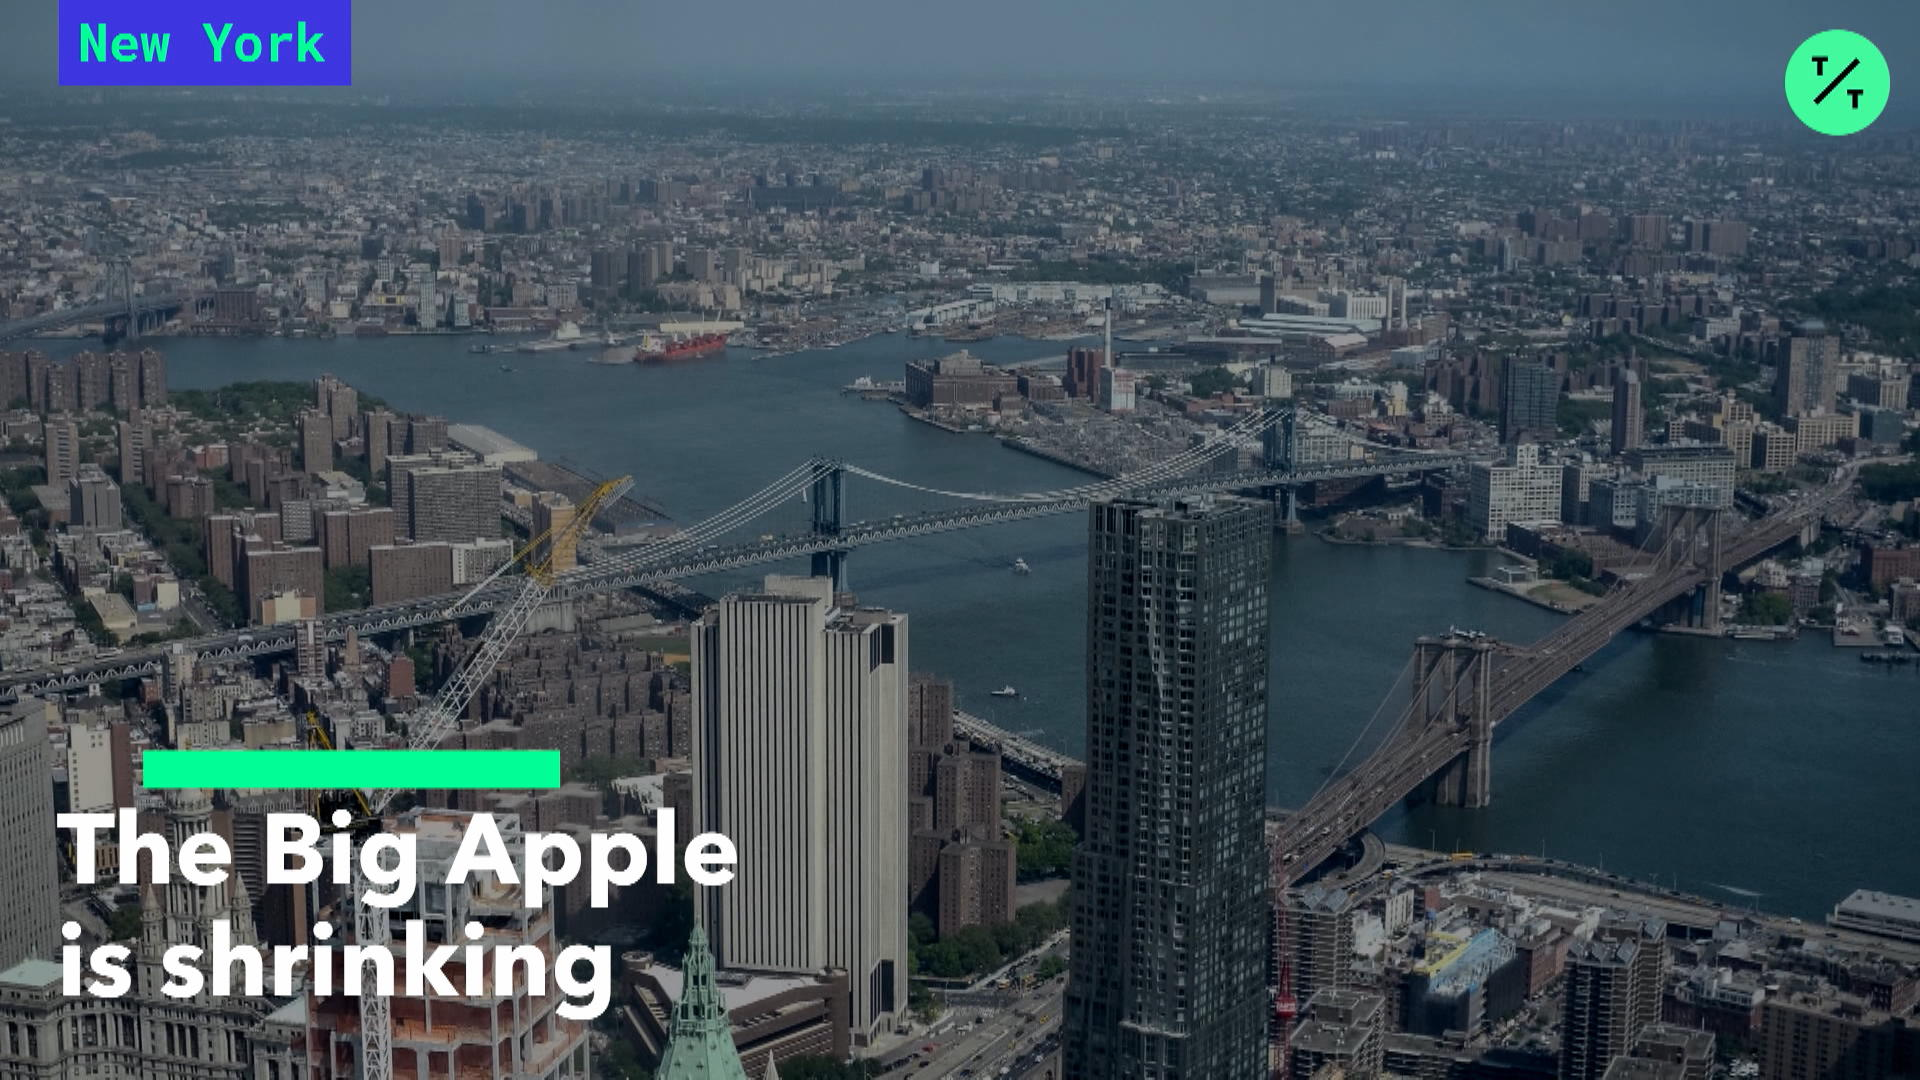 The Big Apple Is Shrinking